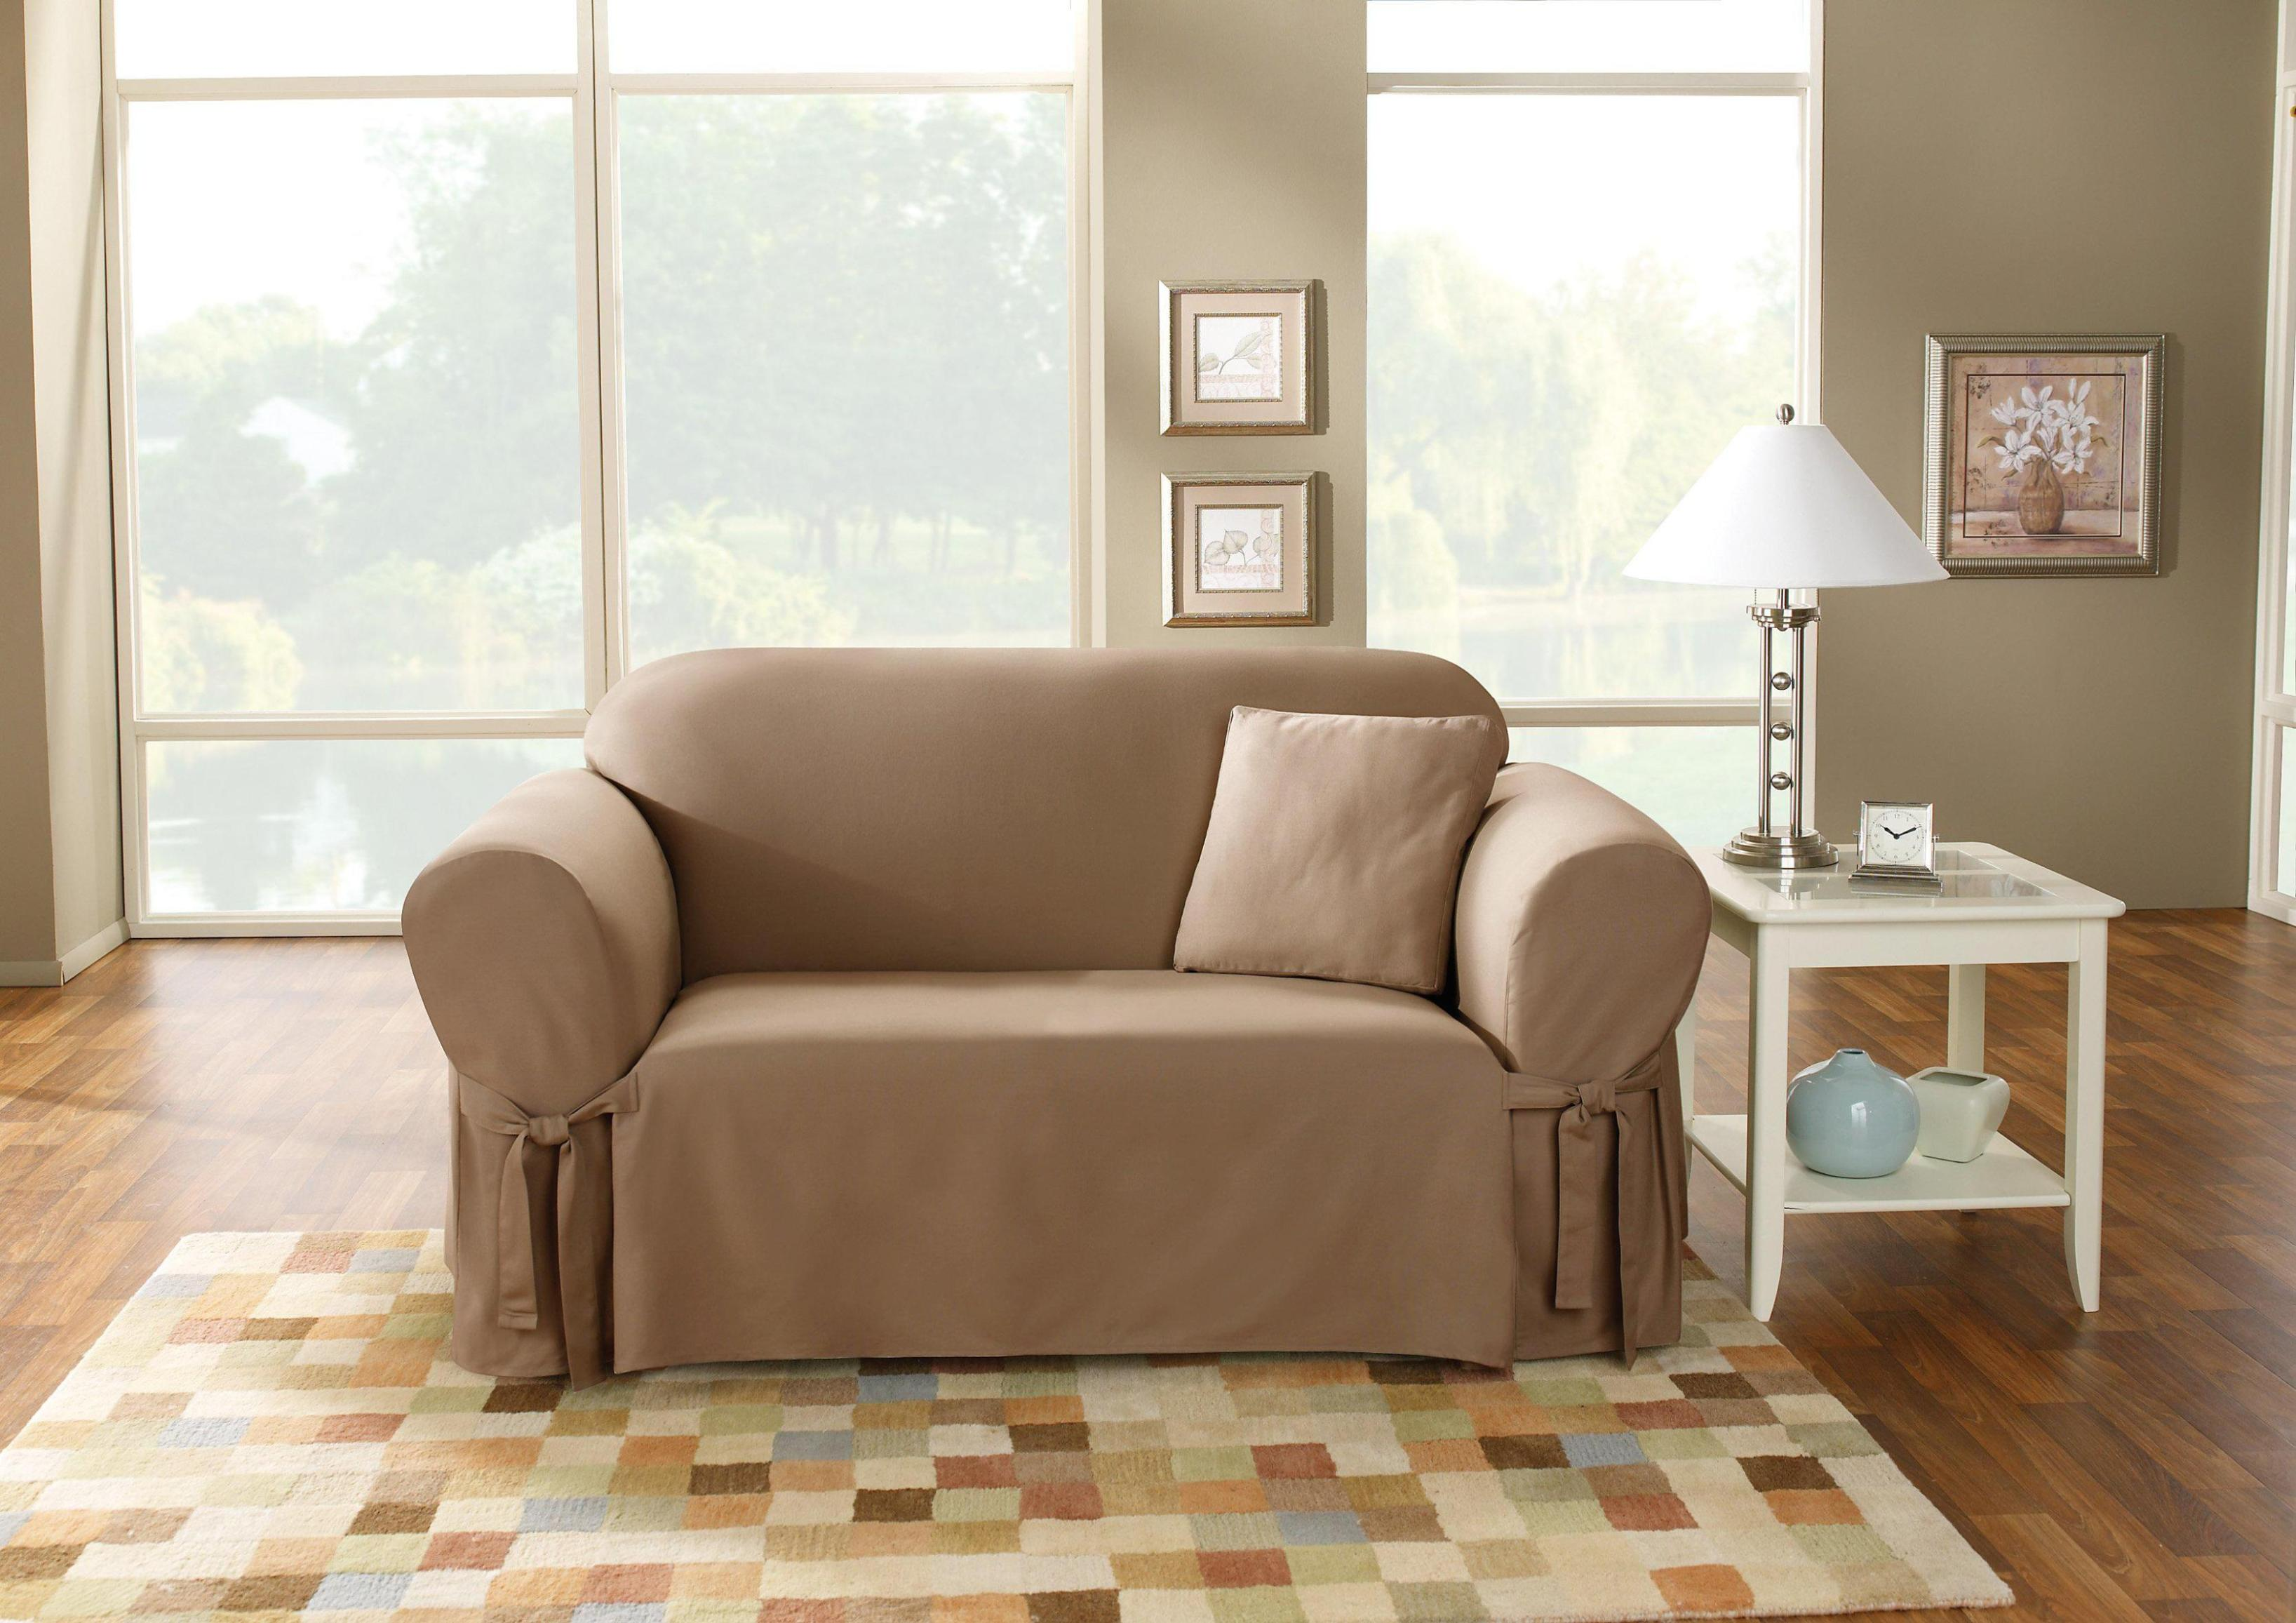 Image of: Sure Fit Loveseat Slipcover